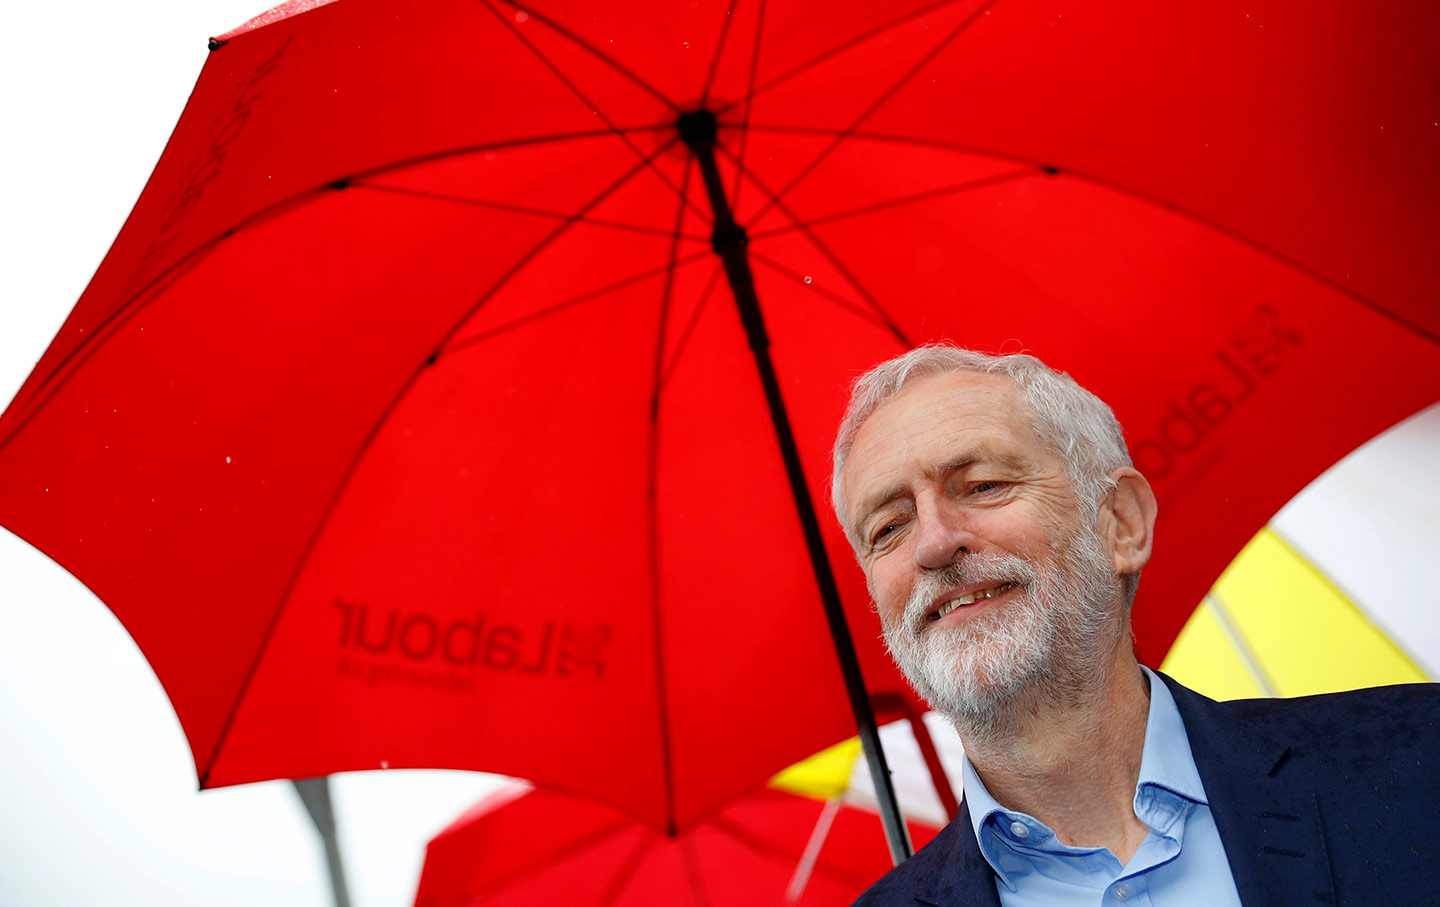 Jeremy Corbyn under a red umbrella.